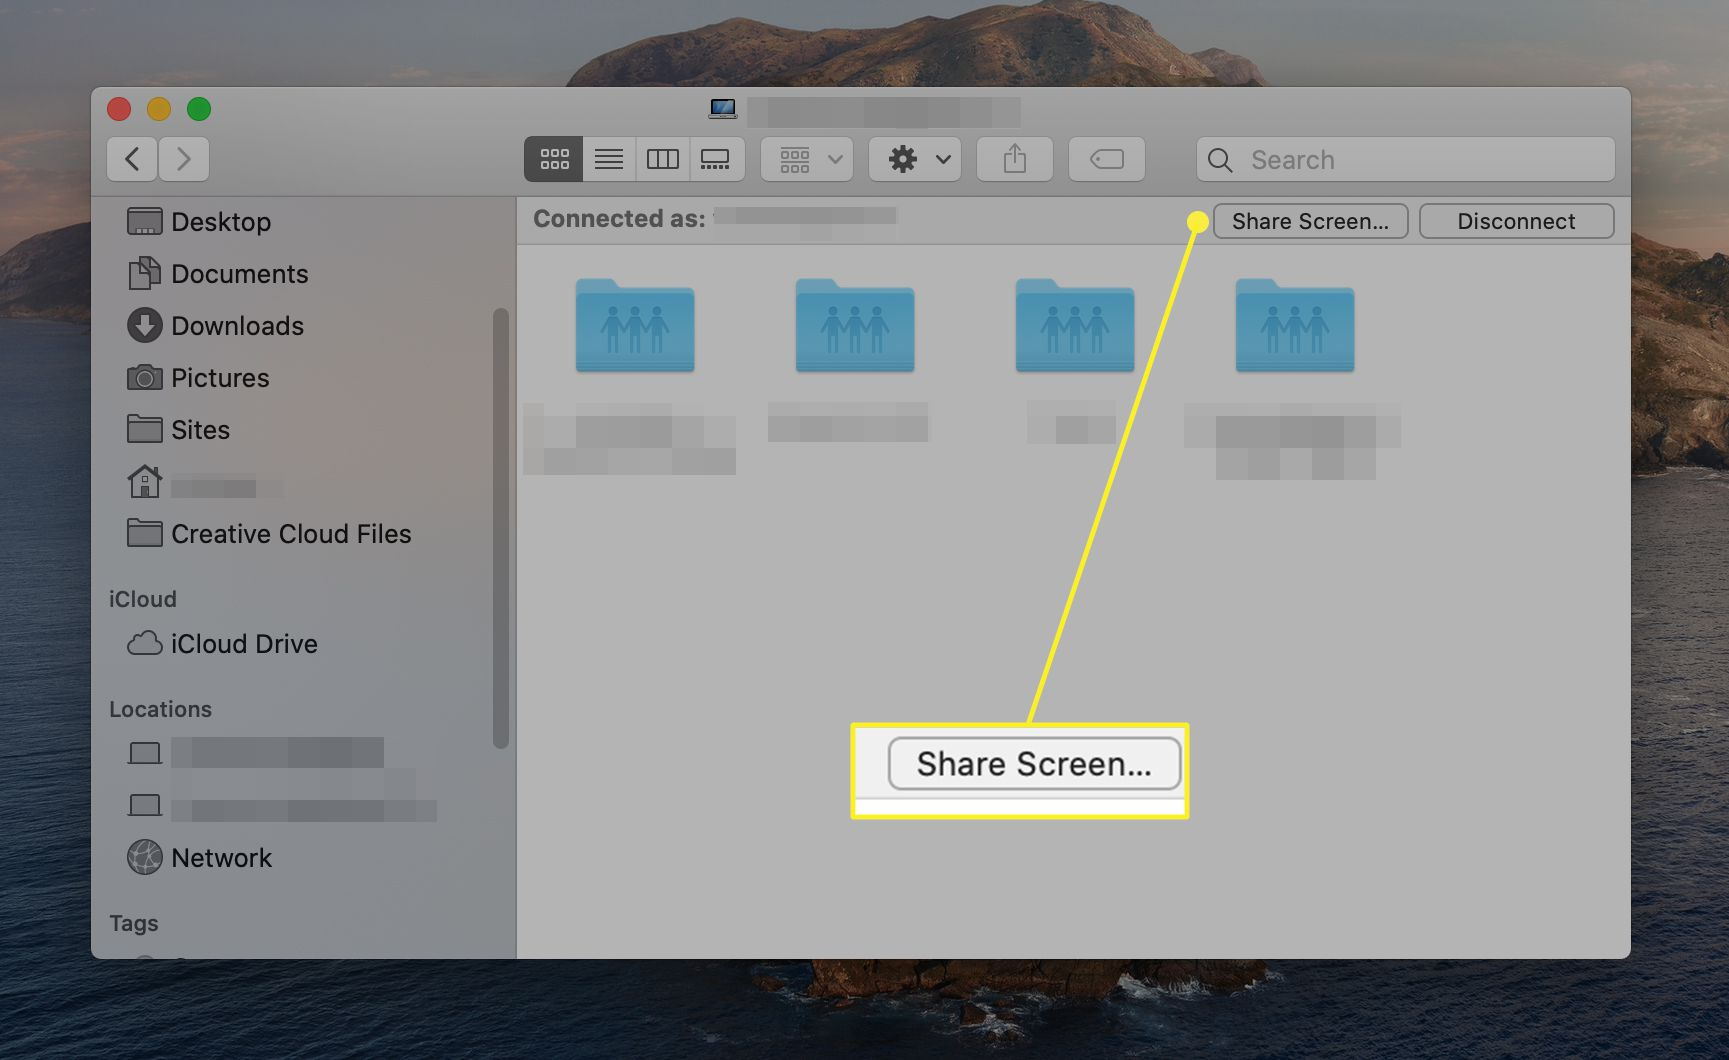 Share screen button for Macs logged in with the same Apple ID